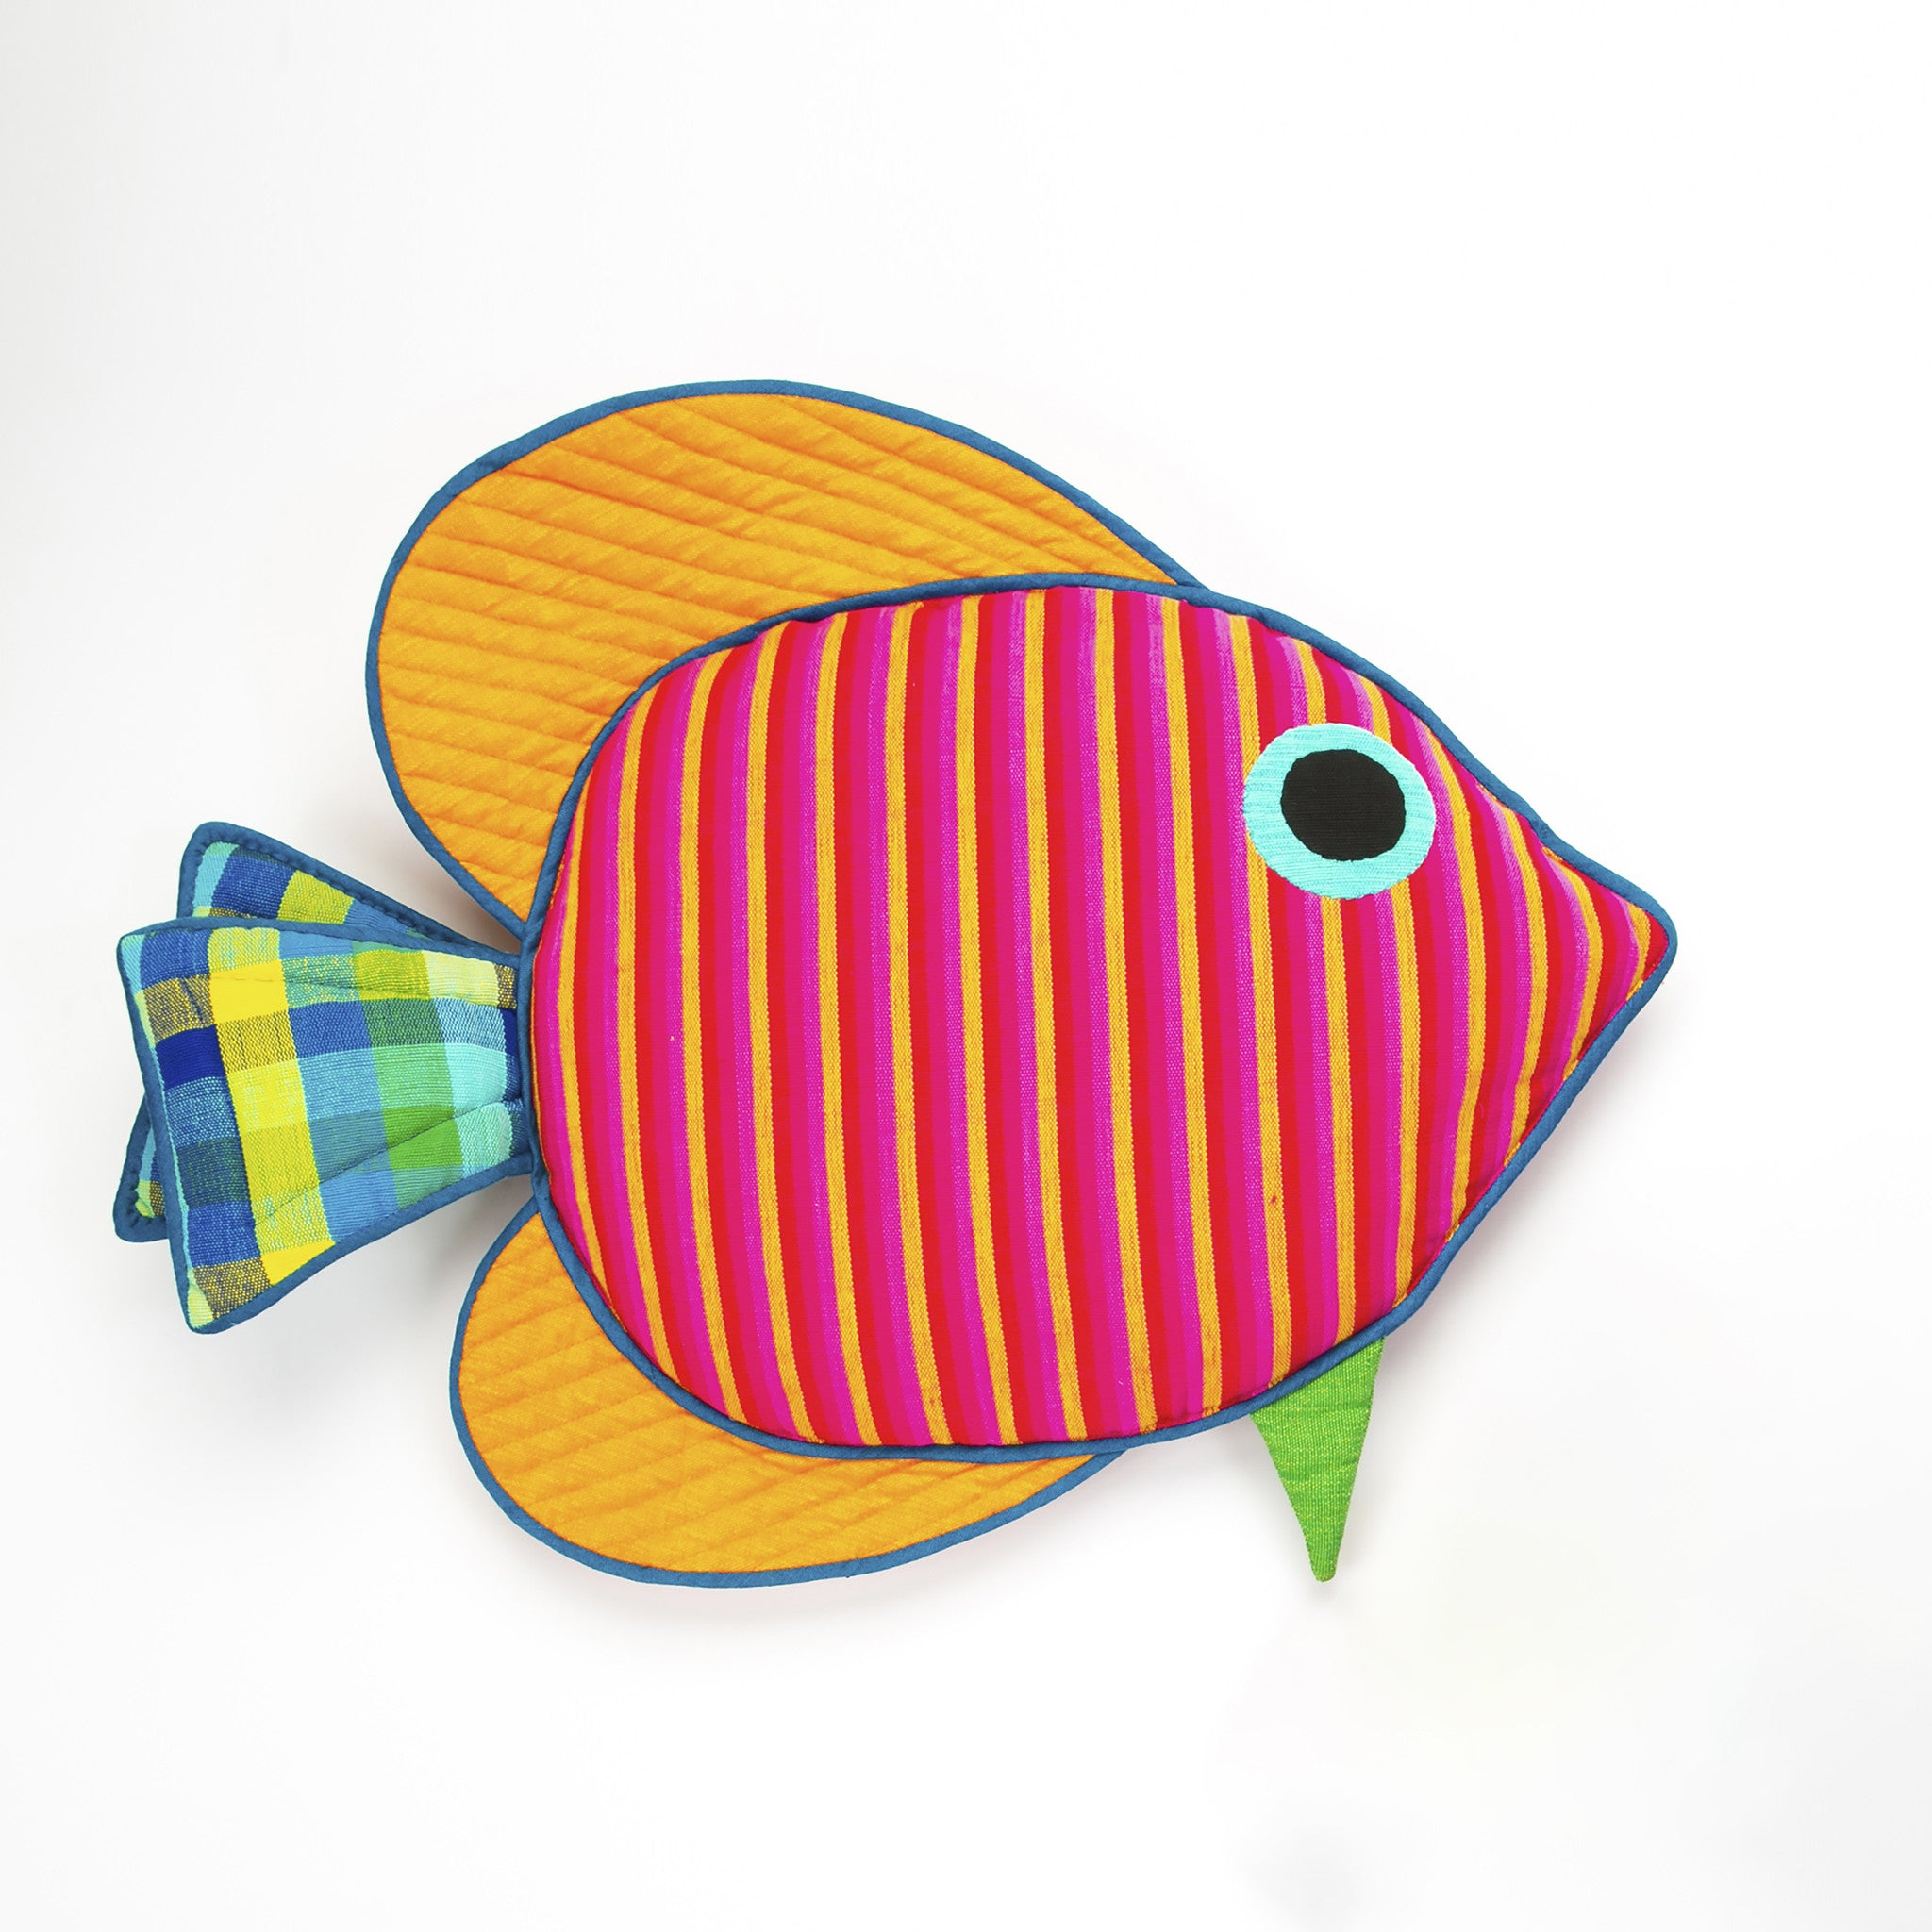 Abigail, the Sail Fin Fish (large size)